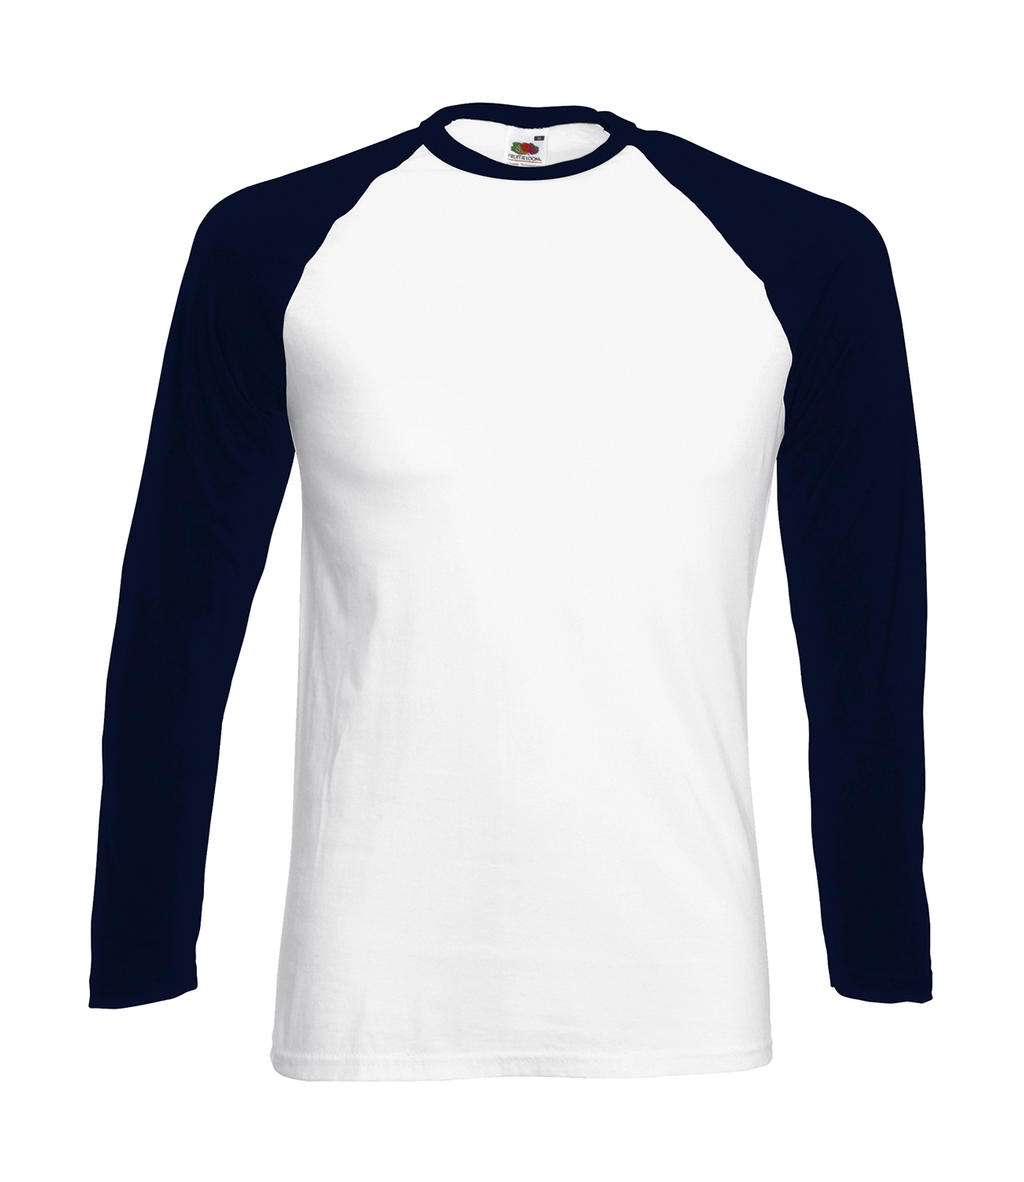 Fruit of the Loom Valueweight Long Sleeve Baseball T